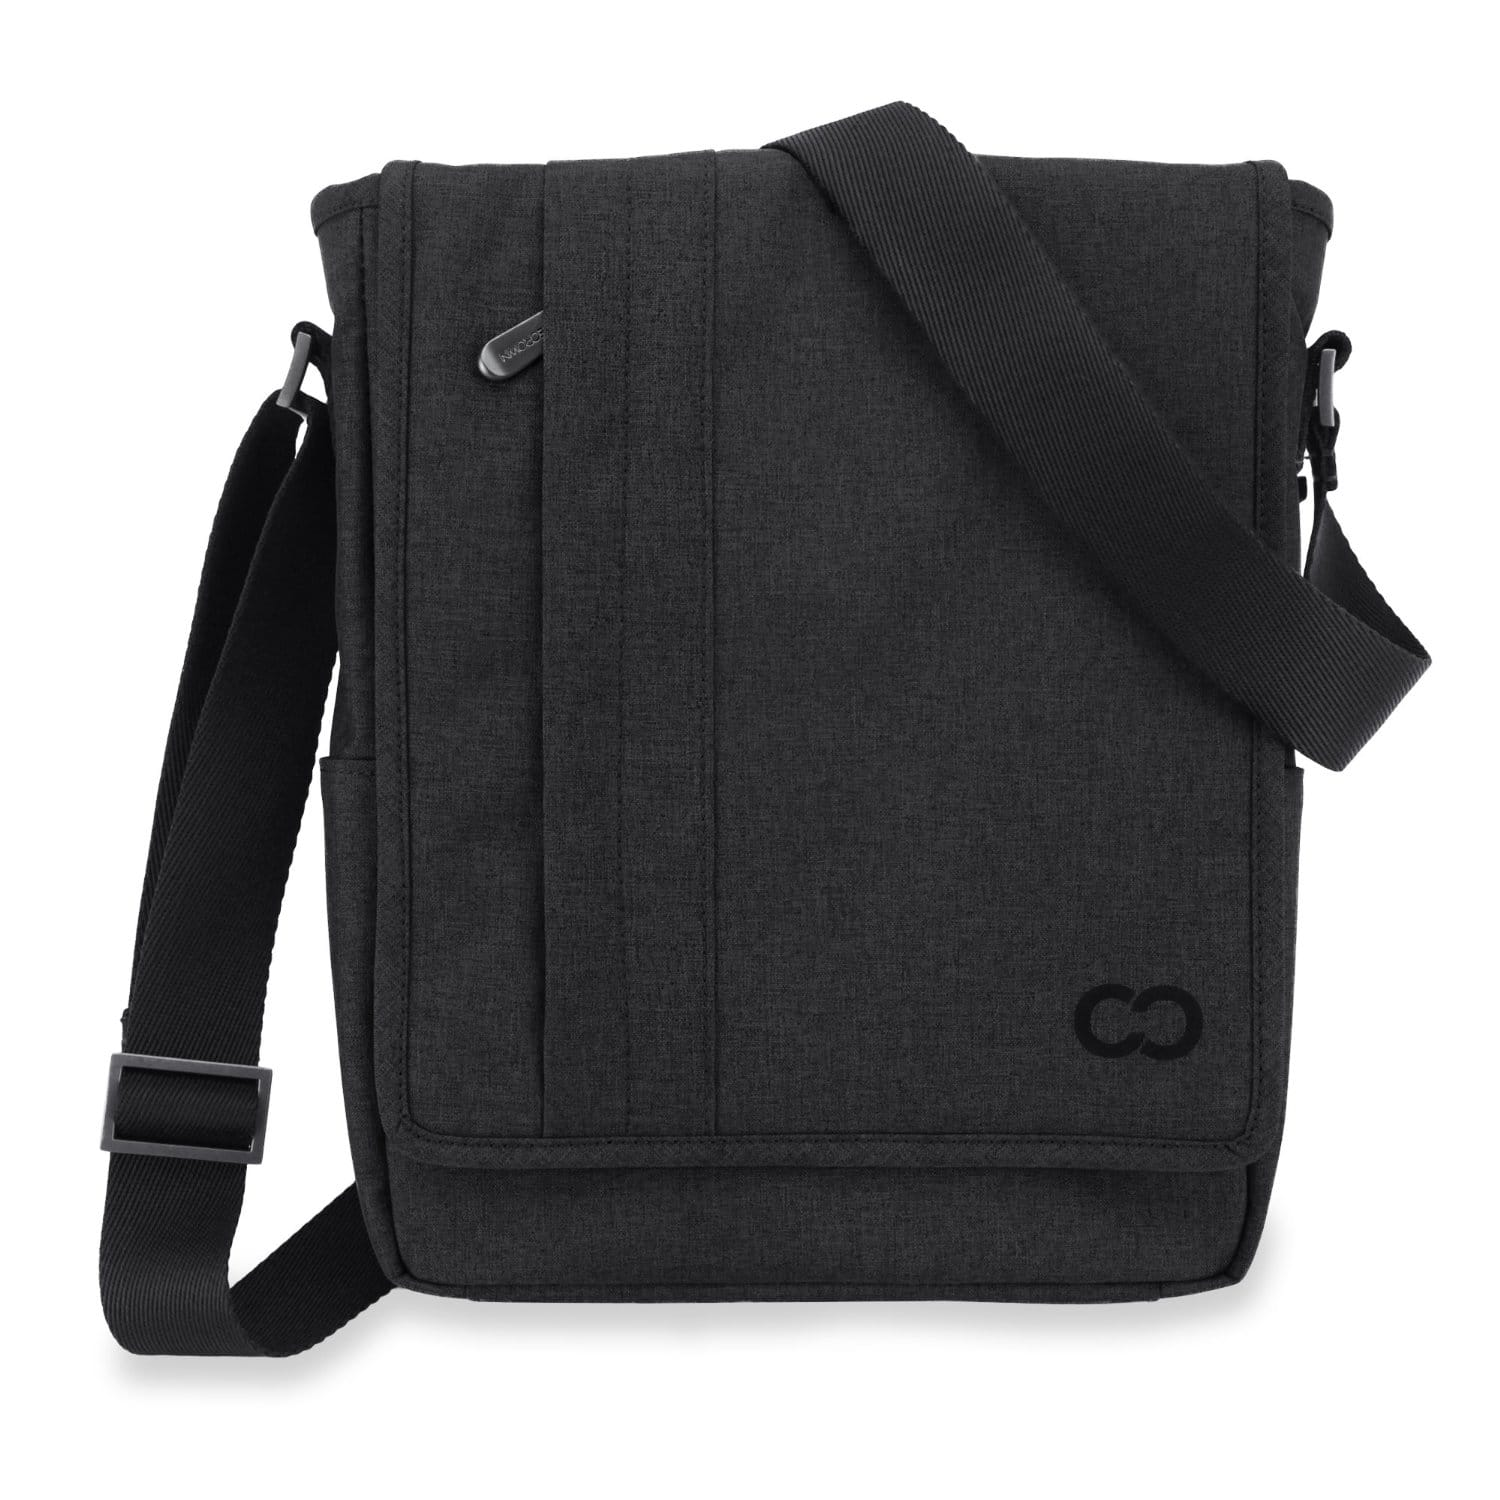 CaseCrown Messenger Bag for Laptops/Surface Pro 3 (various styles/sizes) $20 each + Free Shipping